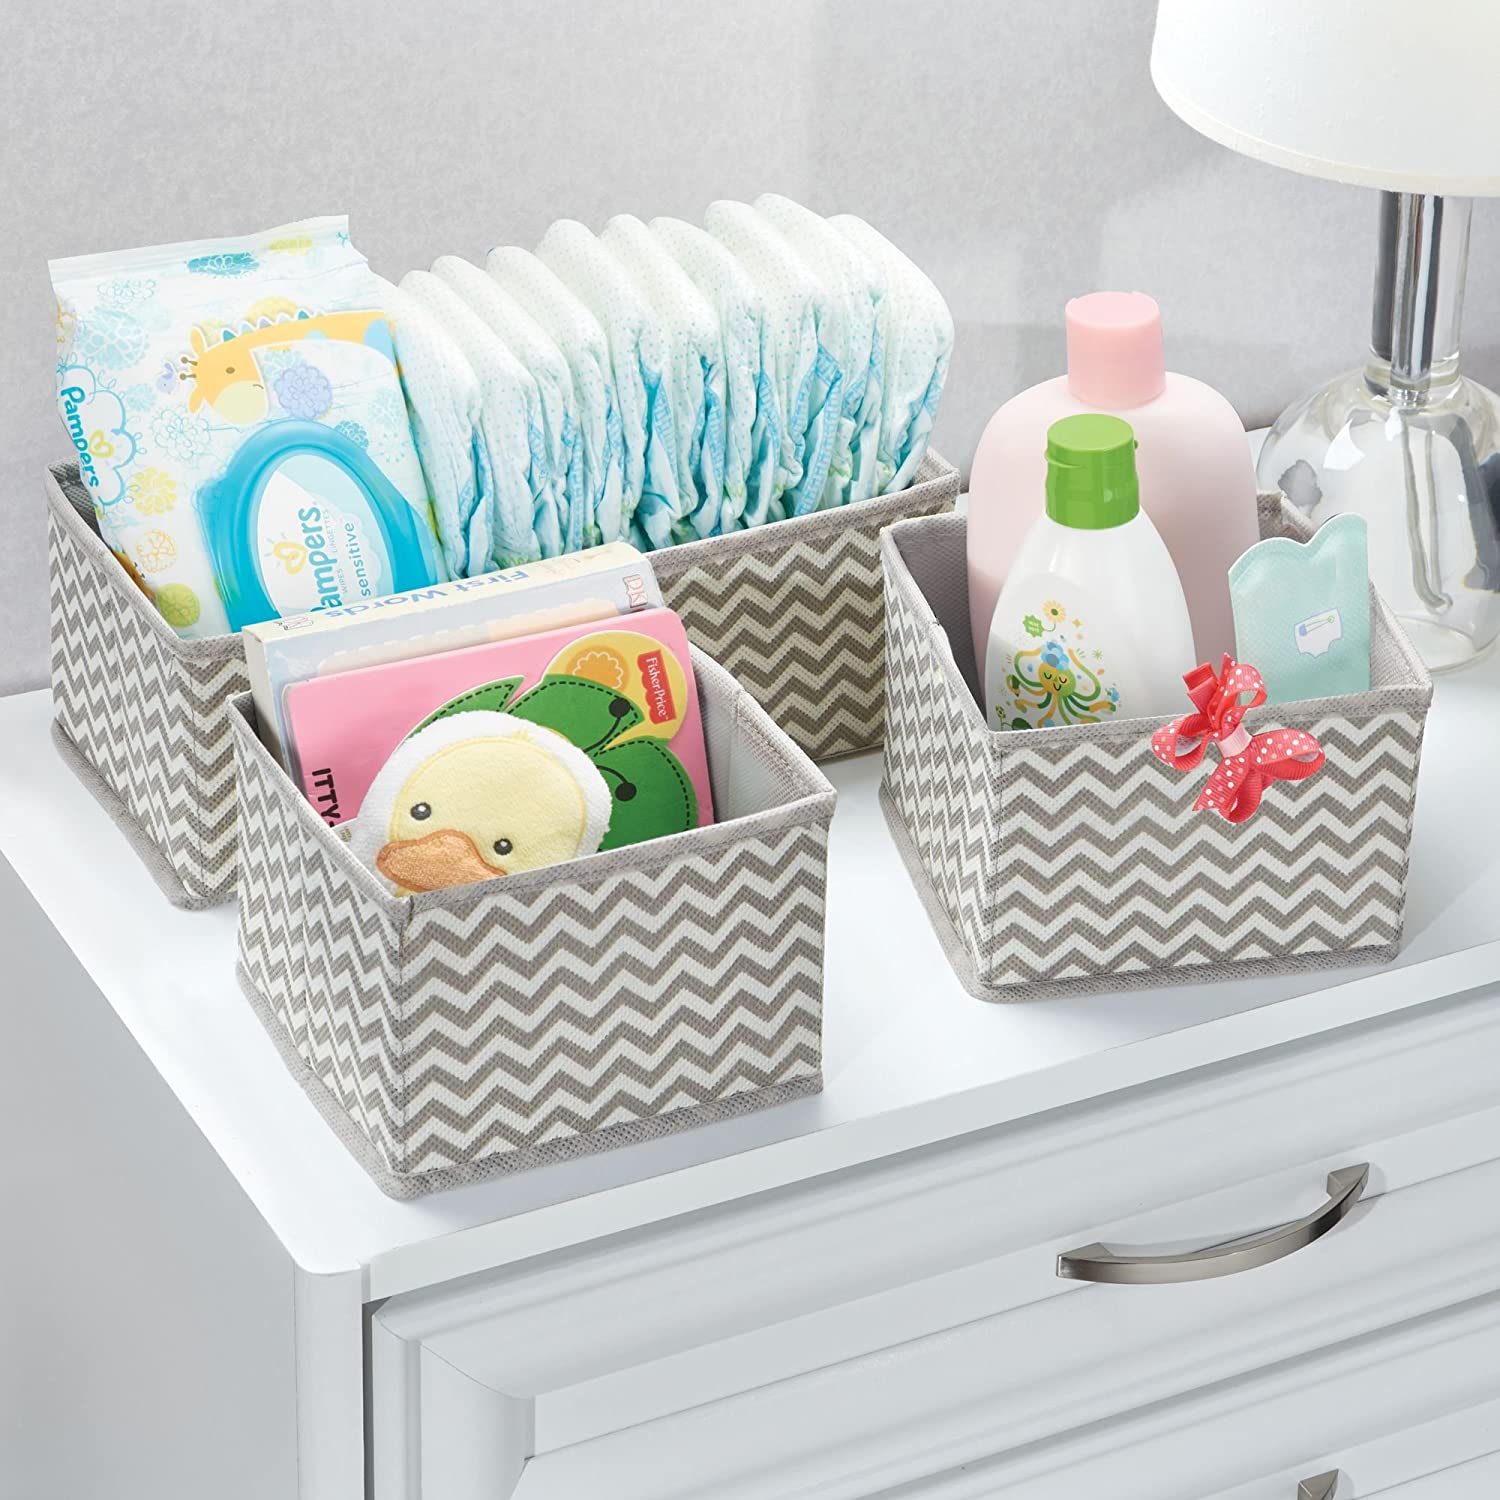 Amazon.com: mDesign Soft Fabric Dresser Drawer and Closet Storage Organizer for Kids/Toddler Room, Nursery, Playroom, Bedroom - Chevron Zig-Zag Print ...